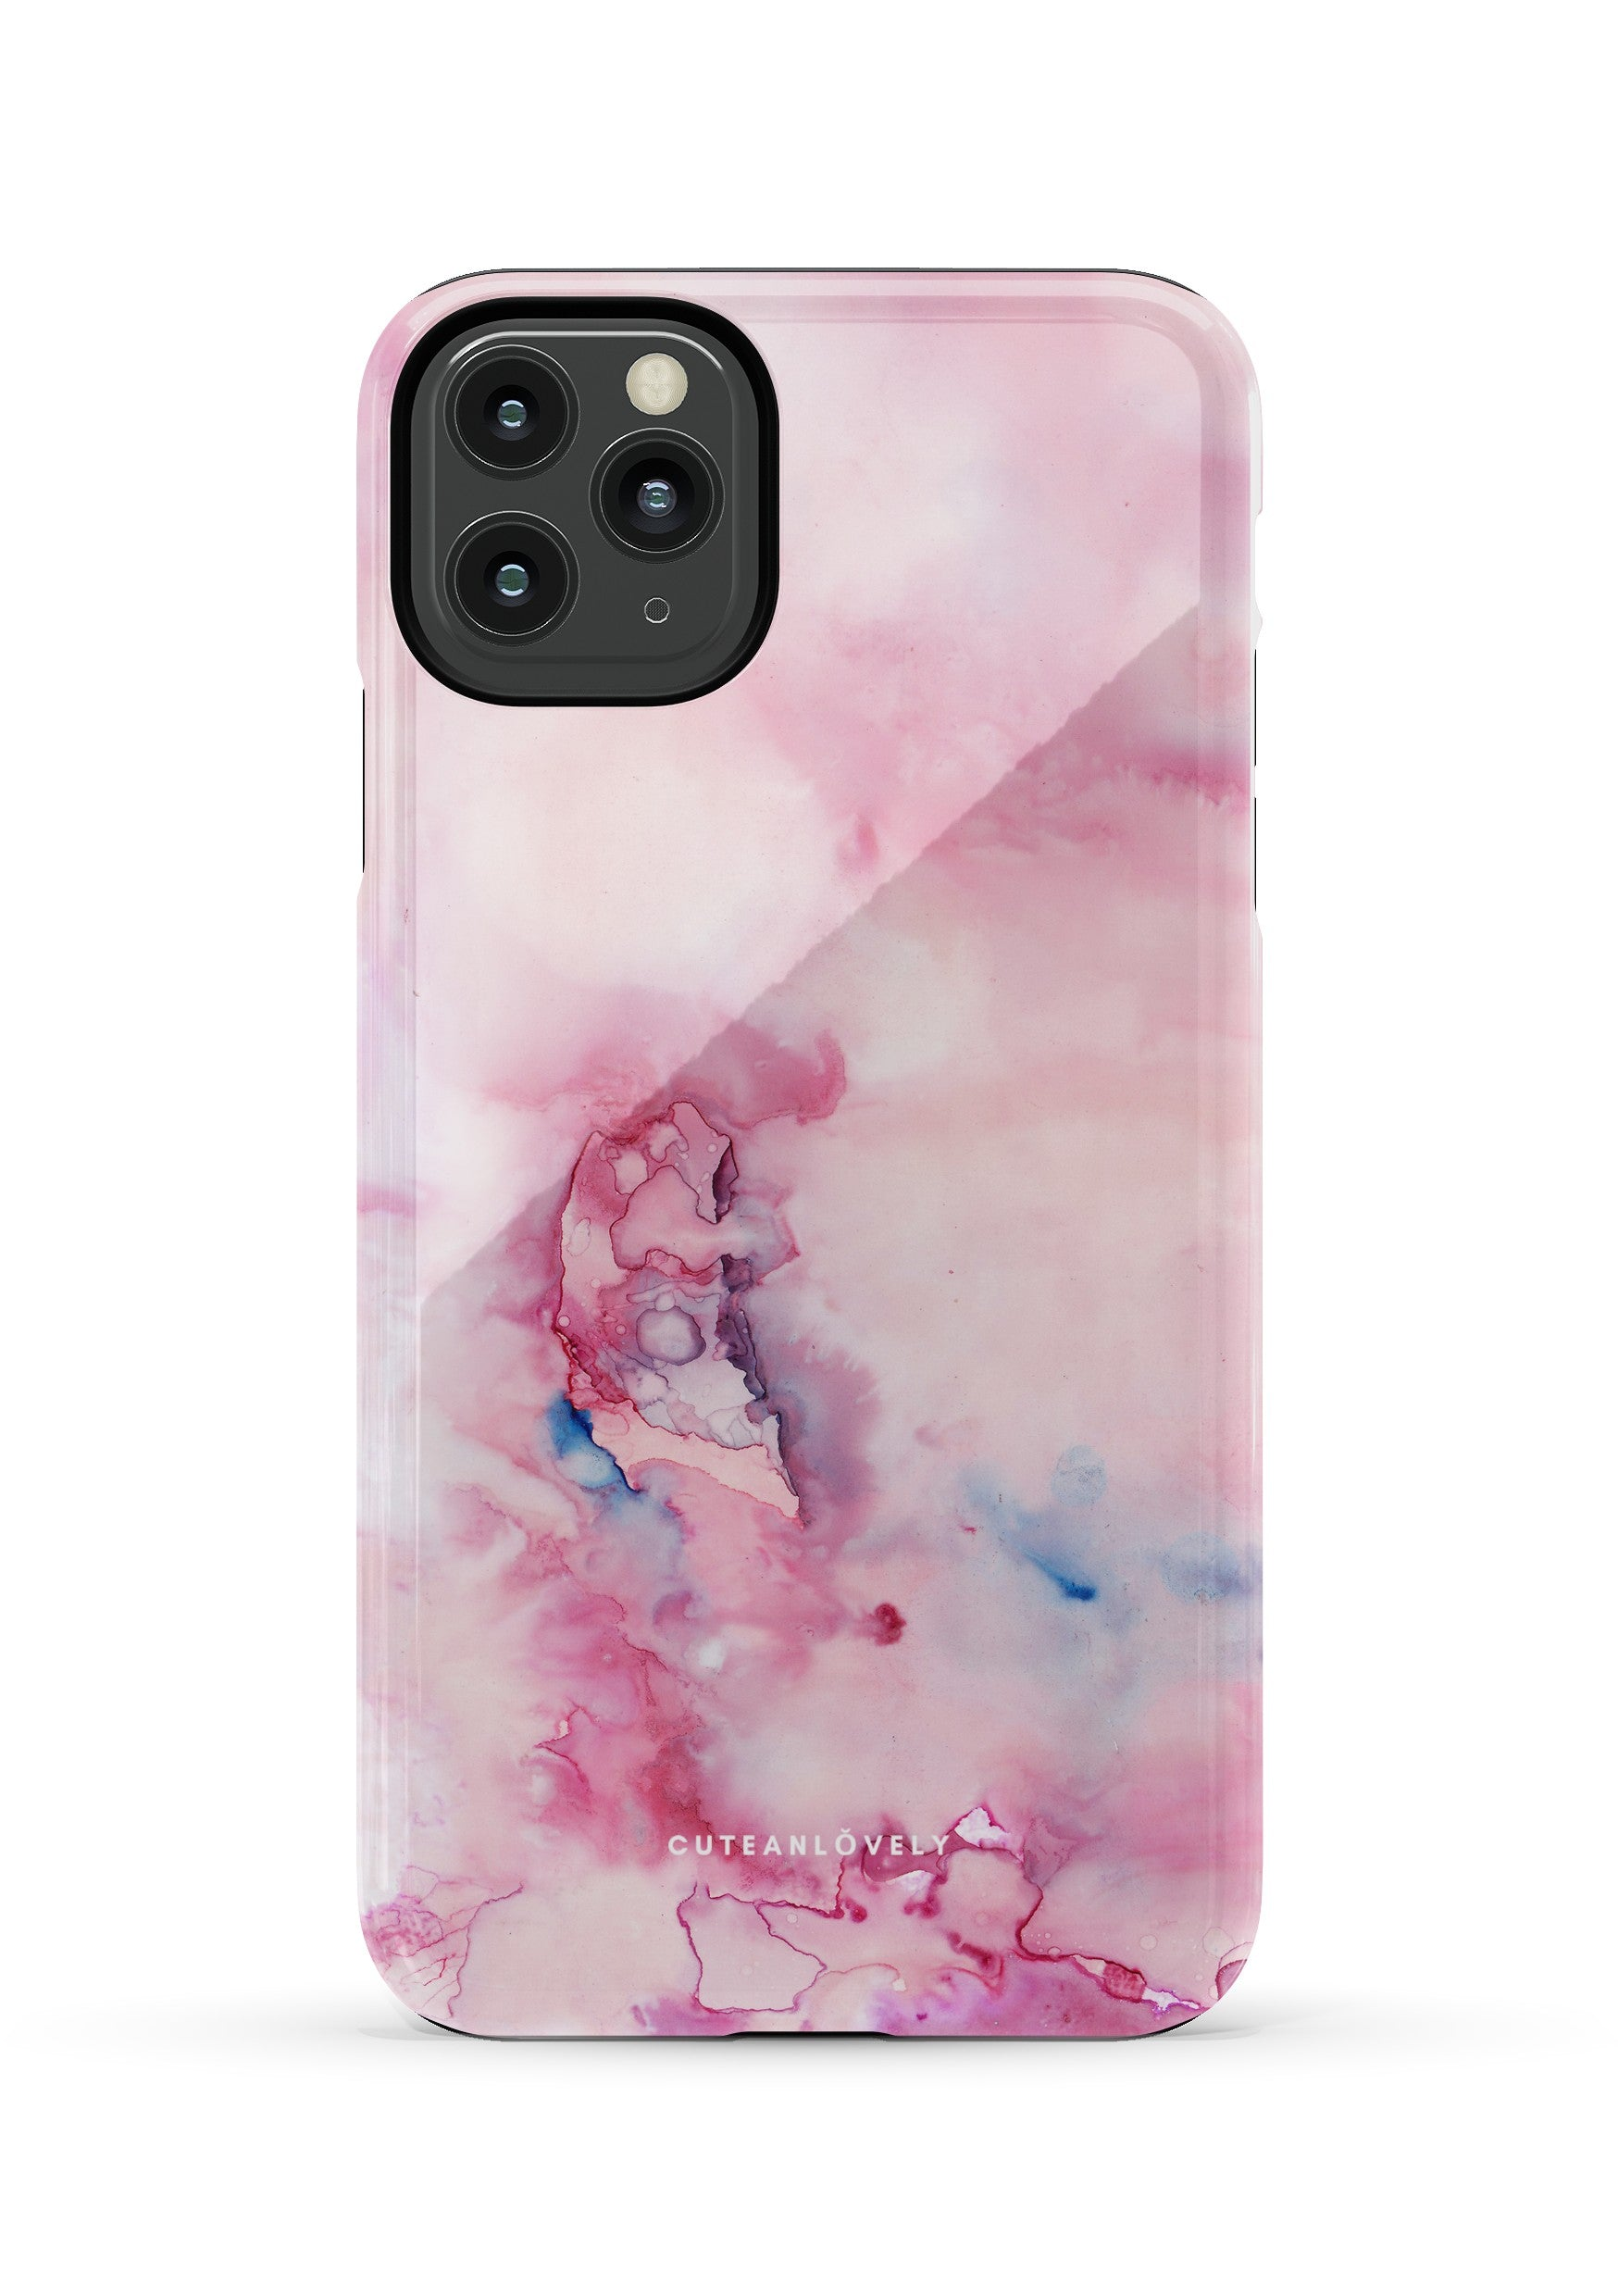 CUTEANLOVELY | Taffy Cloud Marble iPhone 11 Pro Max Case